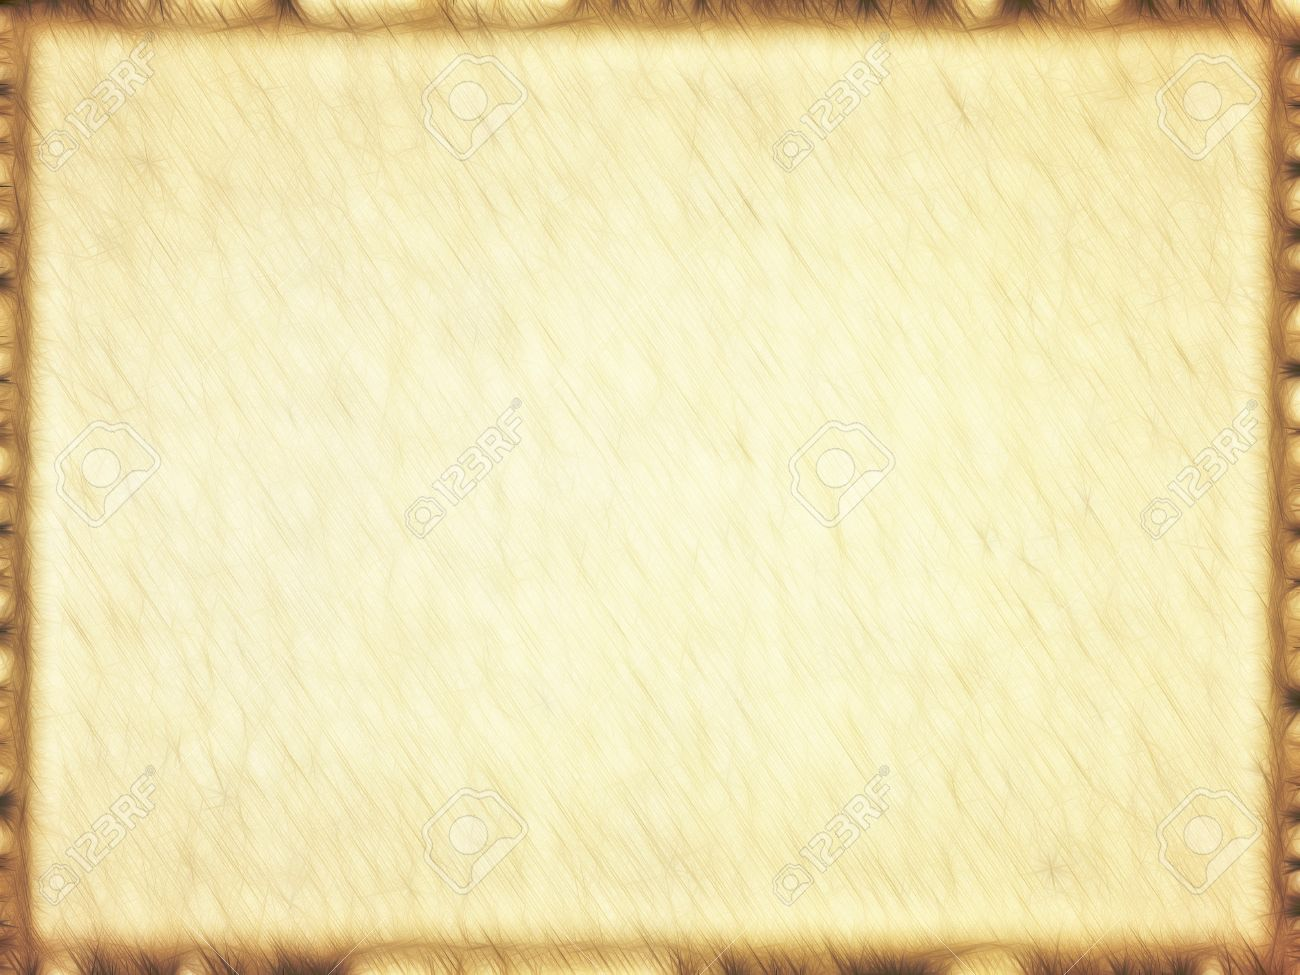 Rectangular Empty Old Papyrus With Brown Border Background Stock ...